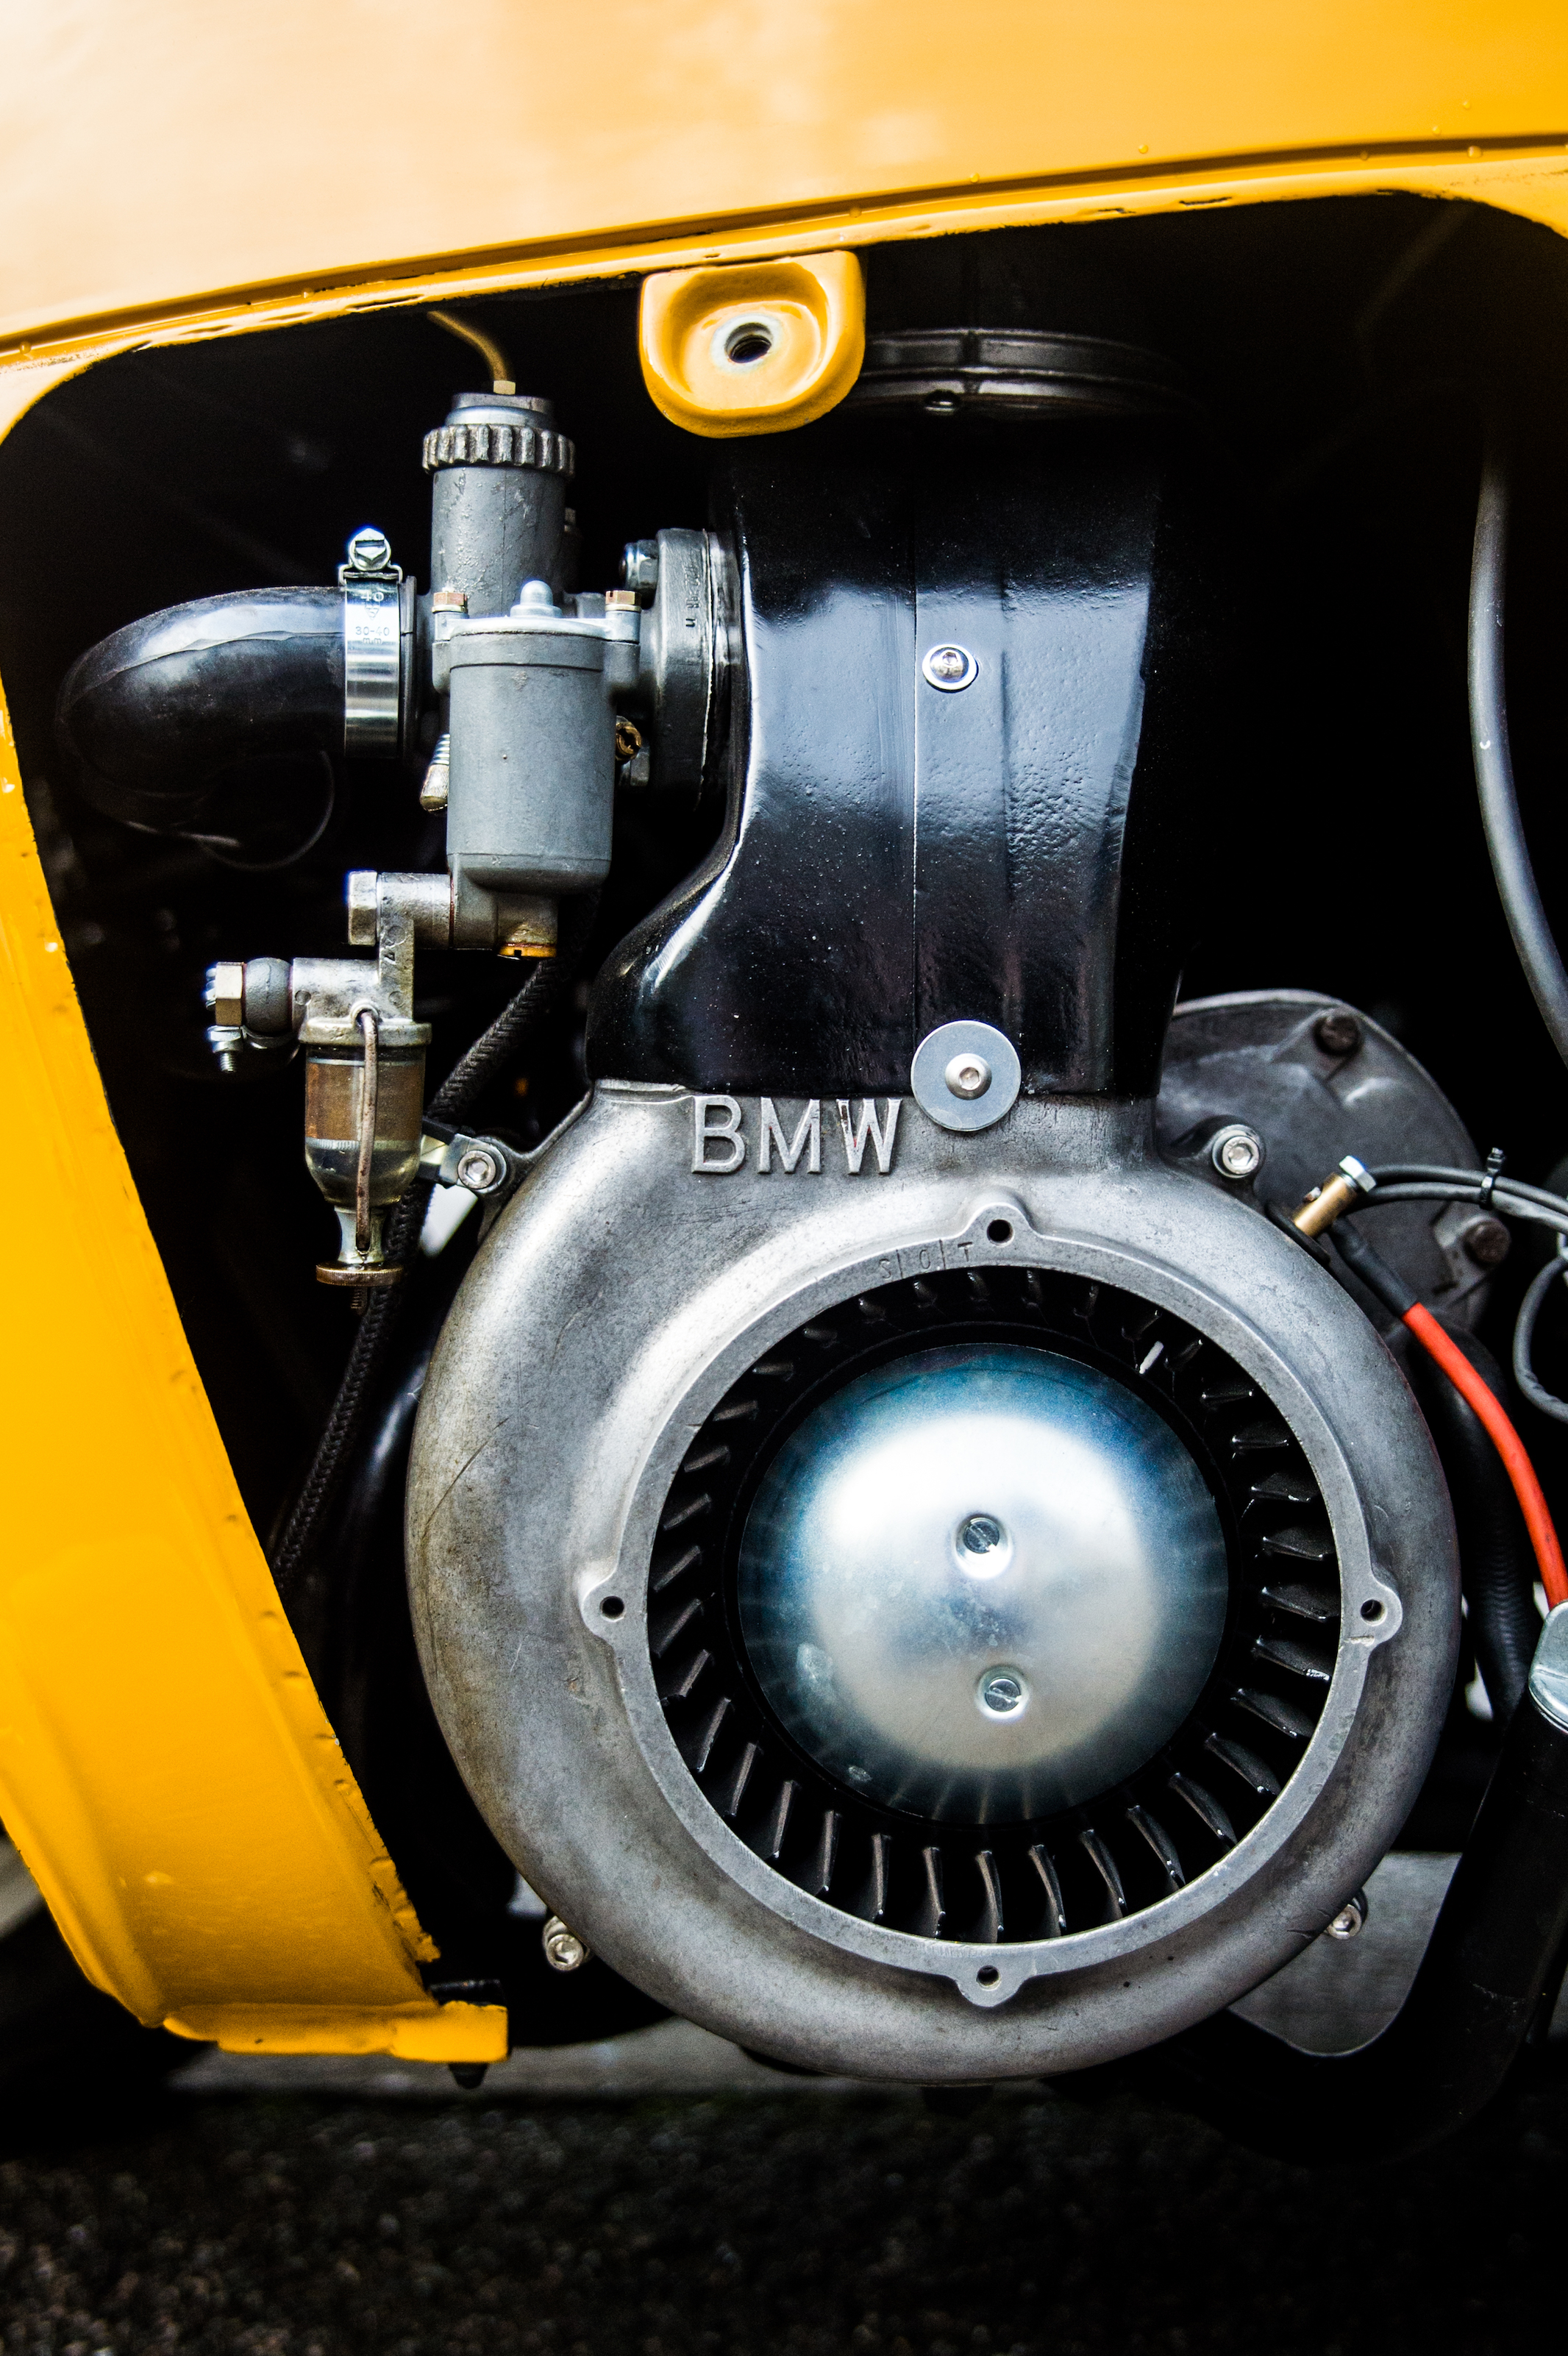 BMW Single cylinder 298cc 13hp engine re-built to original specification by Moto Technique.